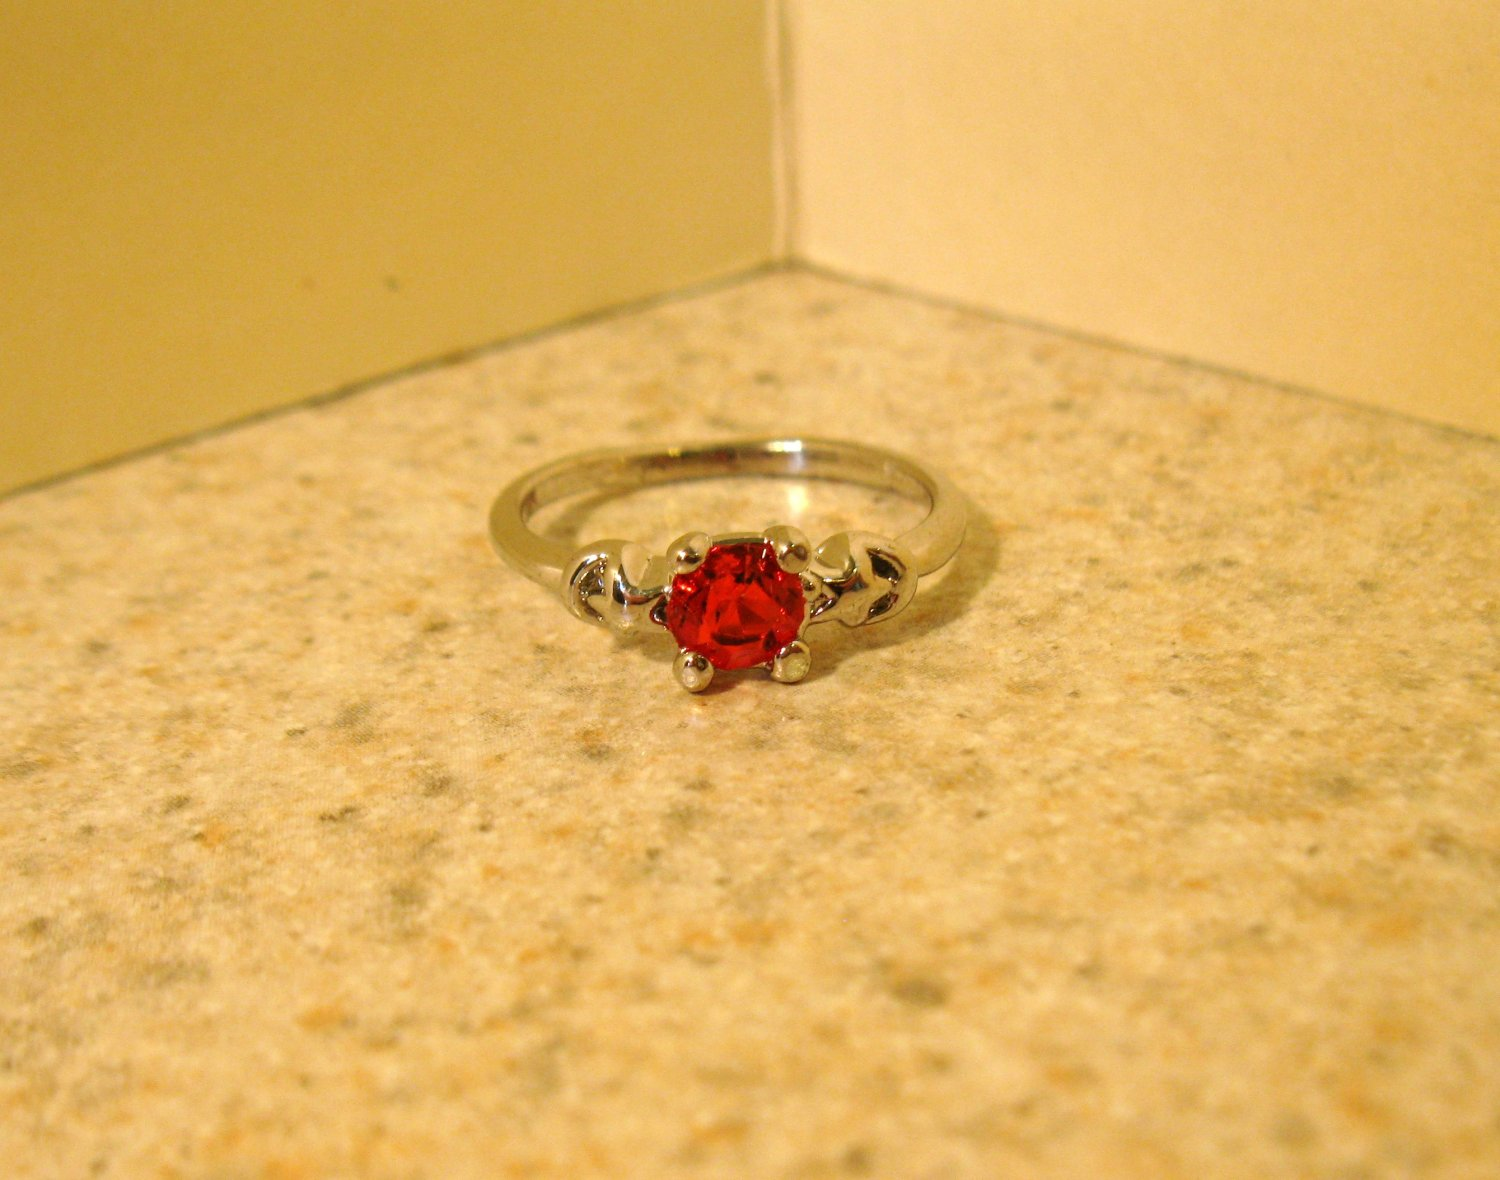 Lovely Red Ruby Solitaire Ring Size 6.5 New! #186